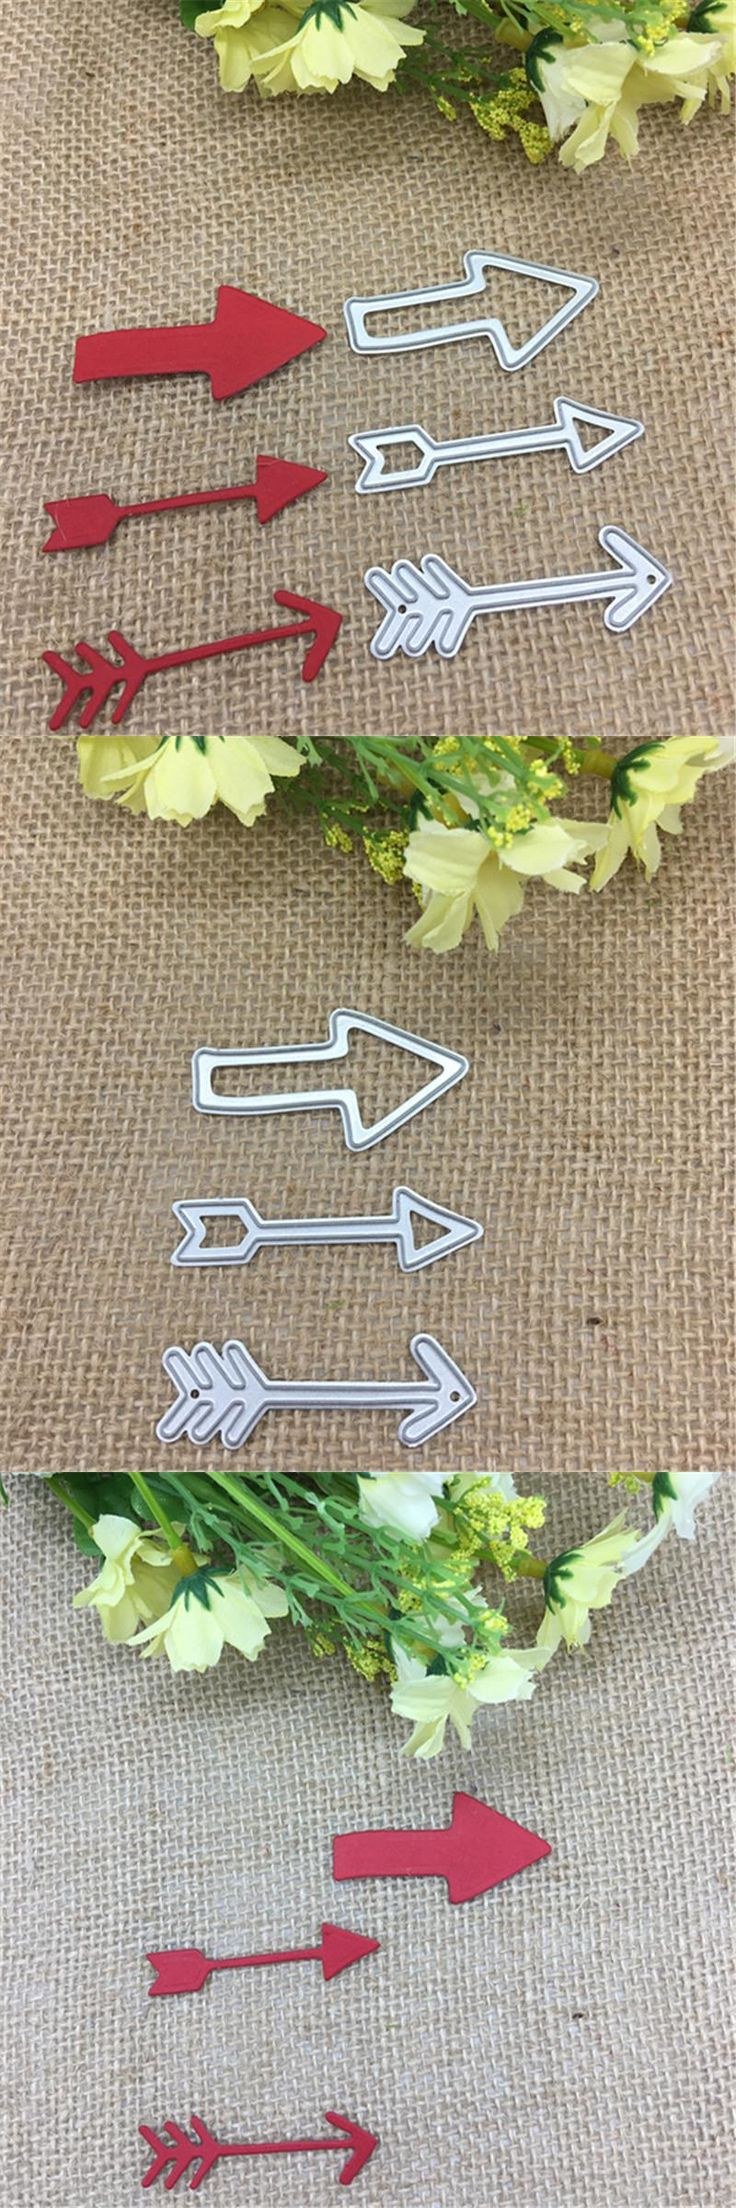 [Visit to Buy] 3 Pieces of Arrows Card Maker Metal Cutting Dies Stencil Scrapbooking Photo Album Card Paper Embossing Craft DIY #Advertisement